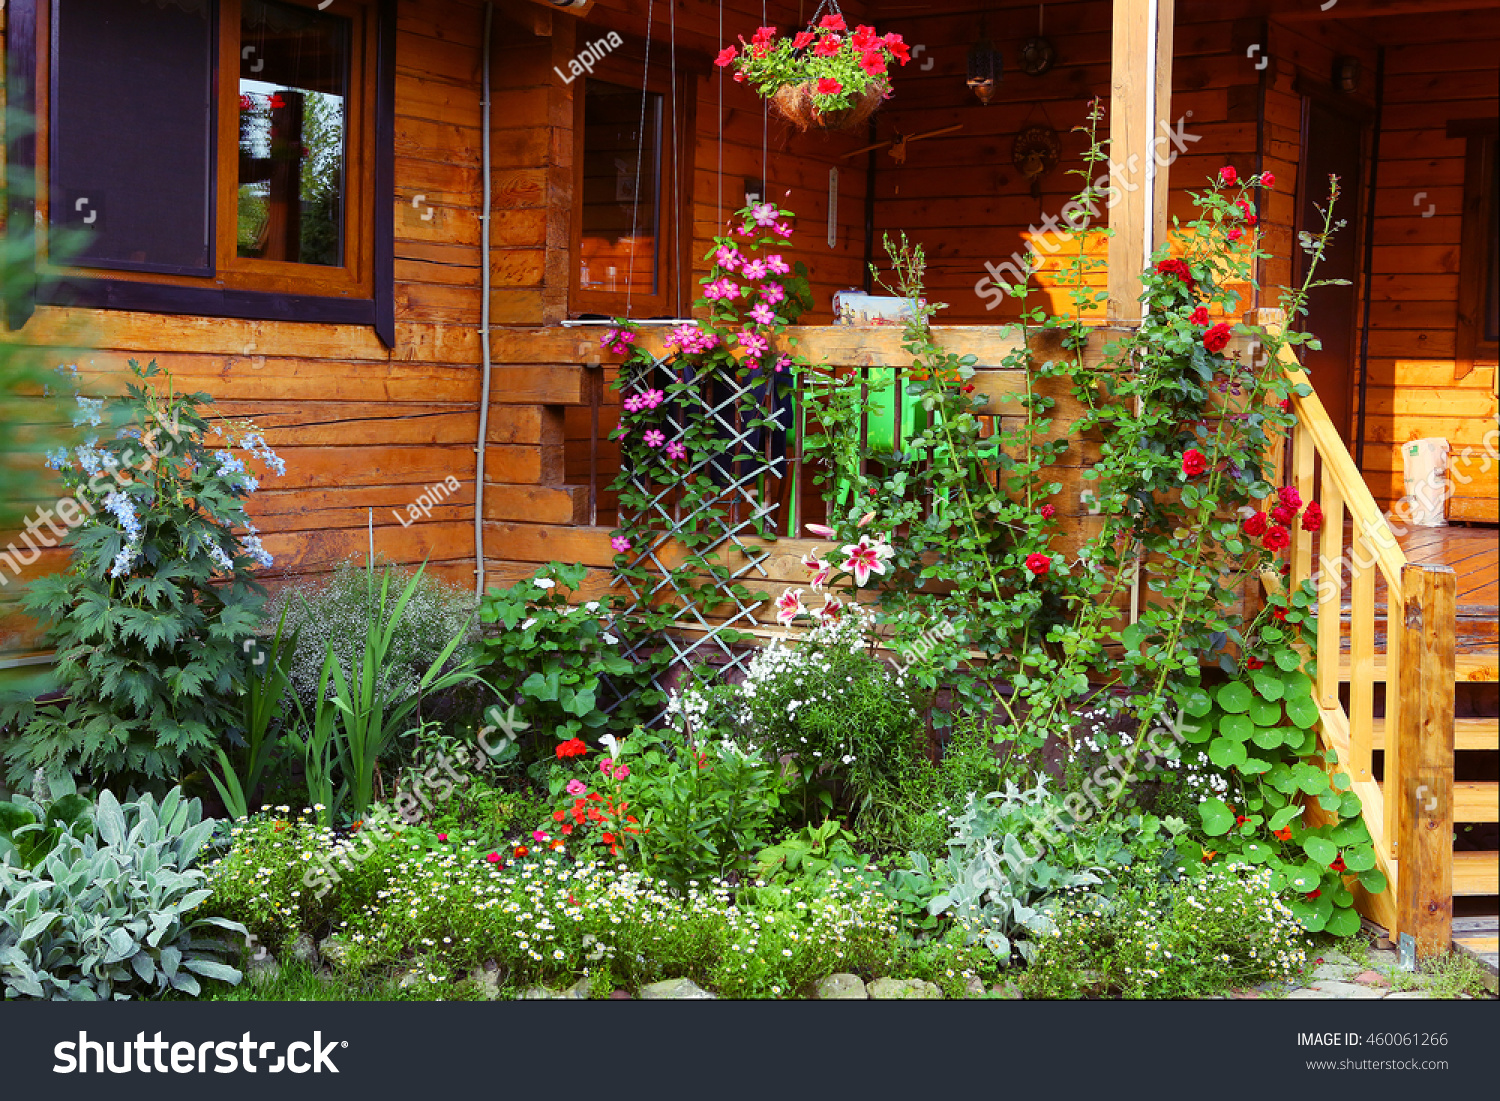 Beautiful garden flowers bushes on cottage stock photo edit now beautiful garden with flowers bushes on the cottage wooden house porch with hand flower basket background izmirmasajfo